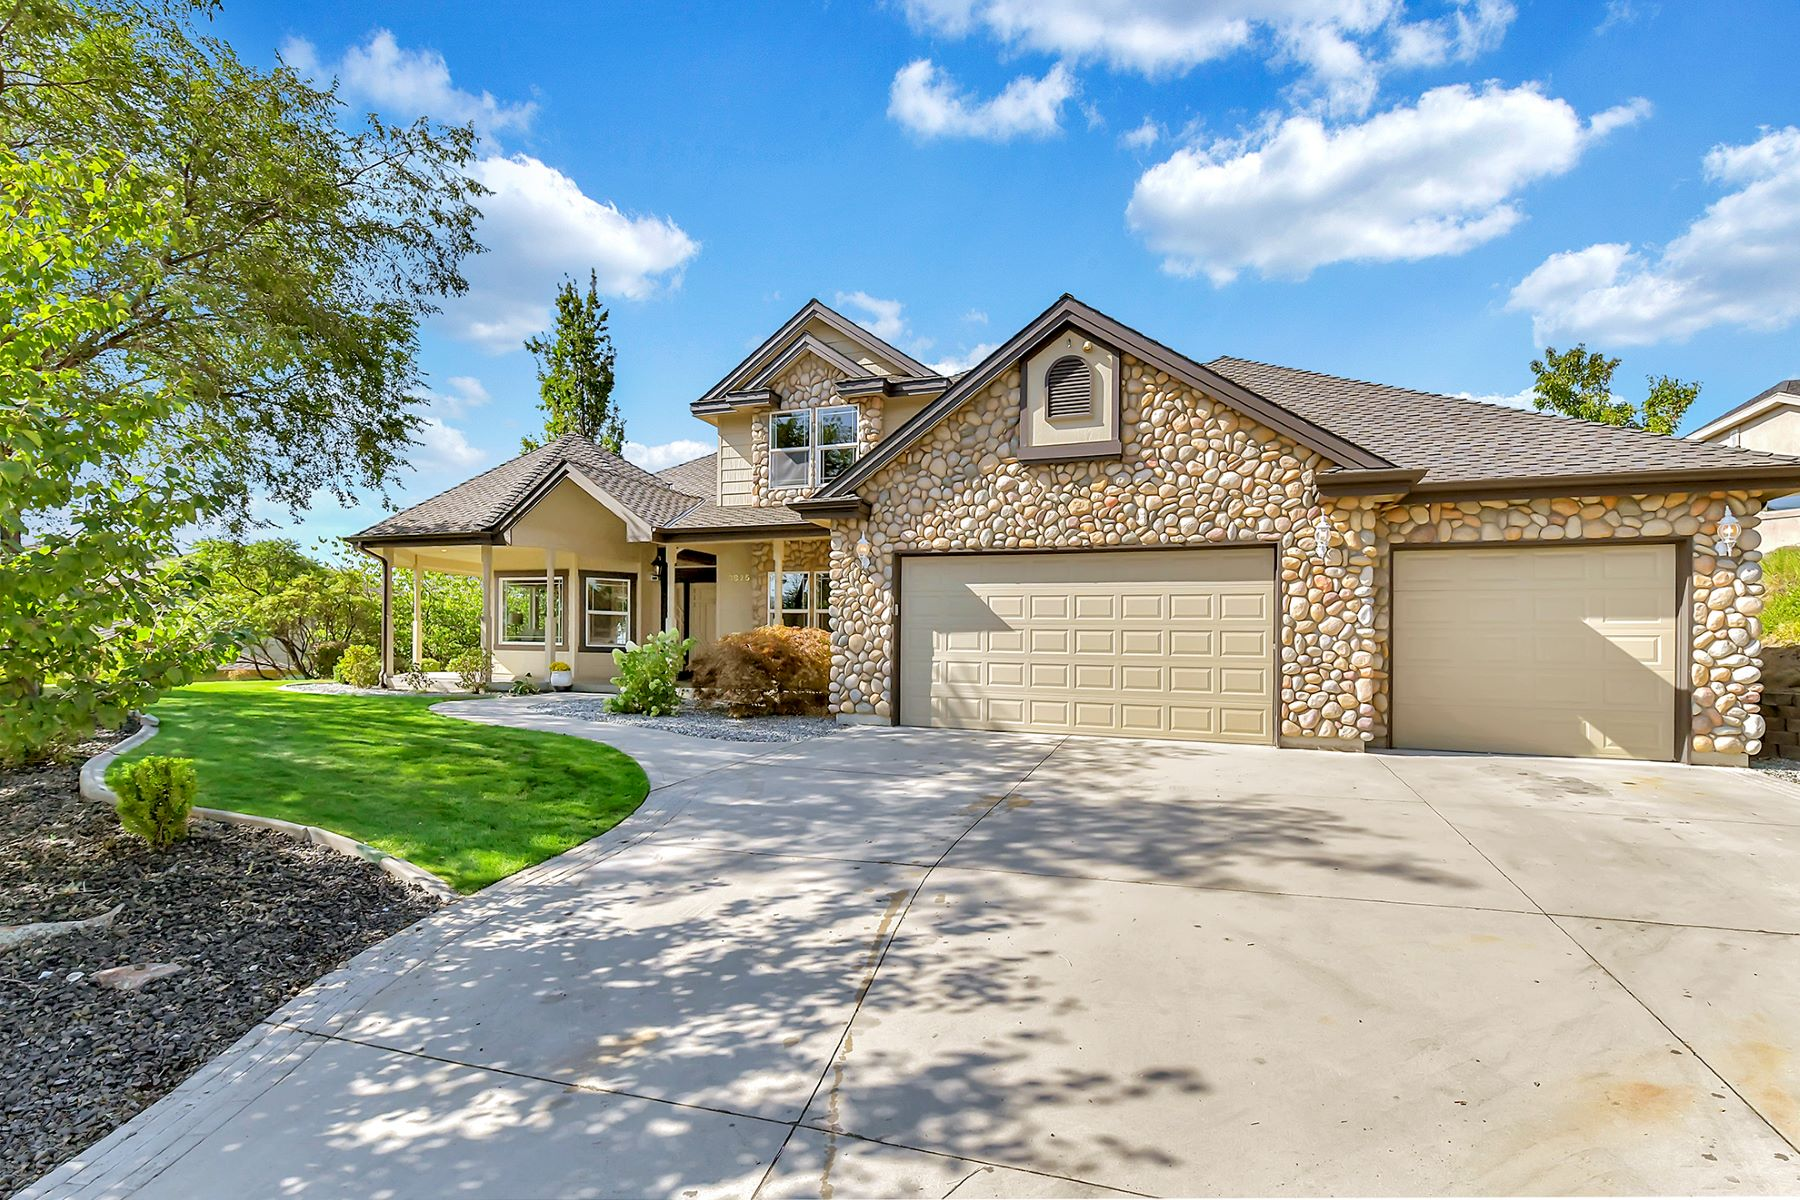 Single Family Homes for Sale at 3825 Quail Heights Ct, Boise 3825 W Quail Heights Ct Boise, Idaho 83703 United States